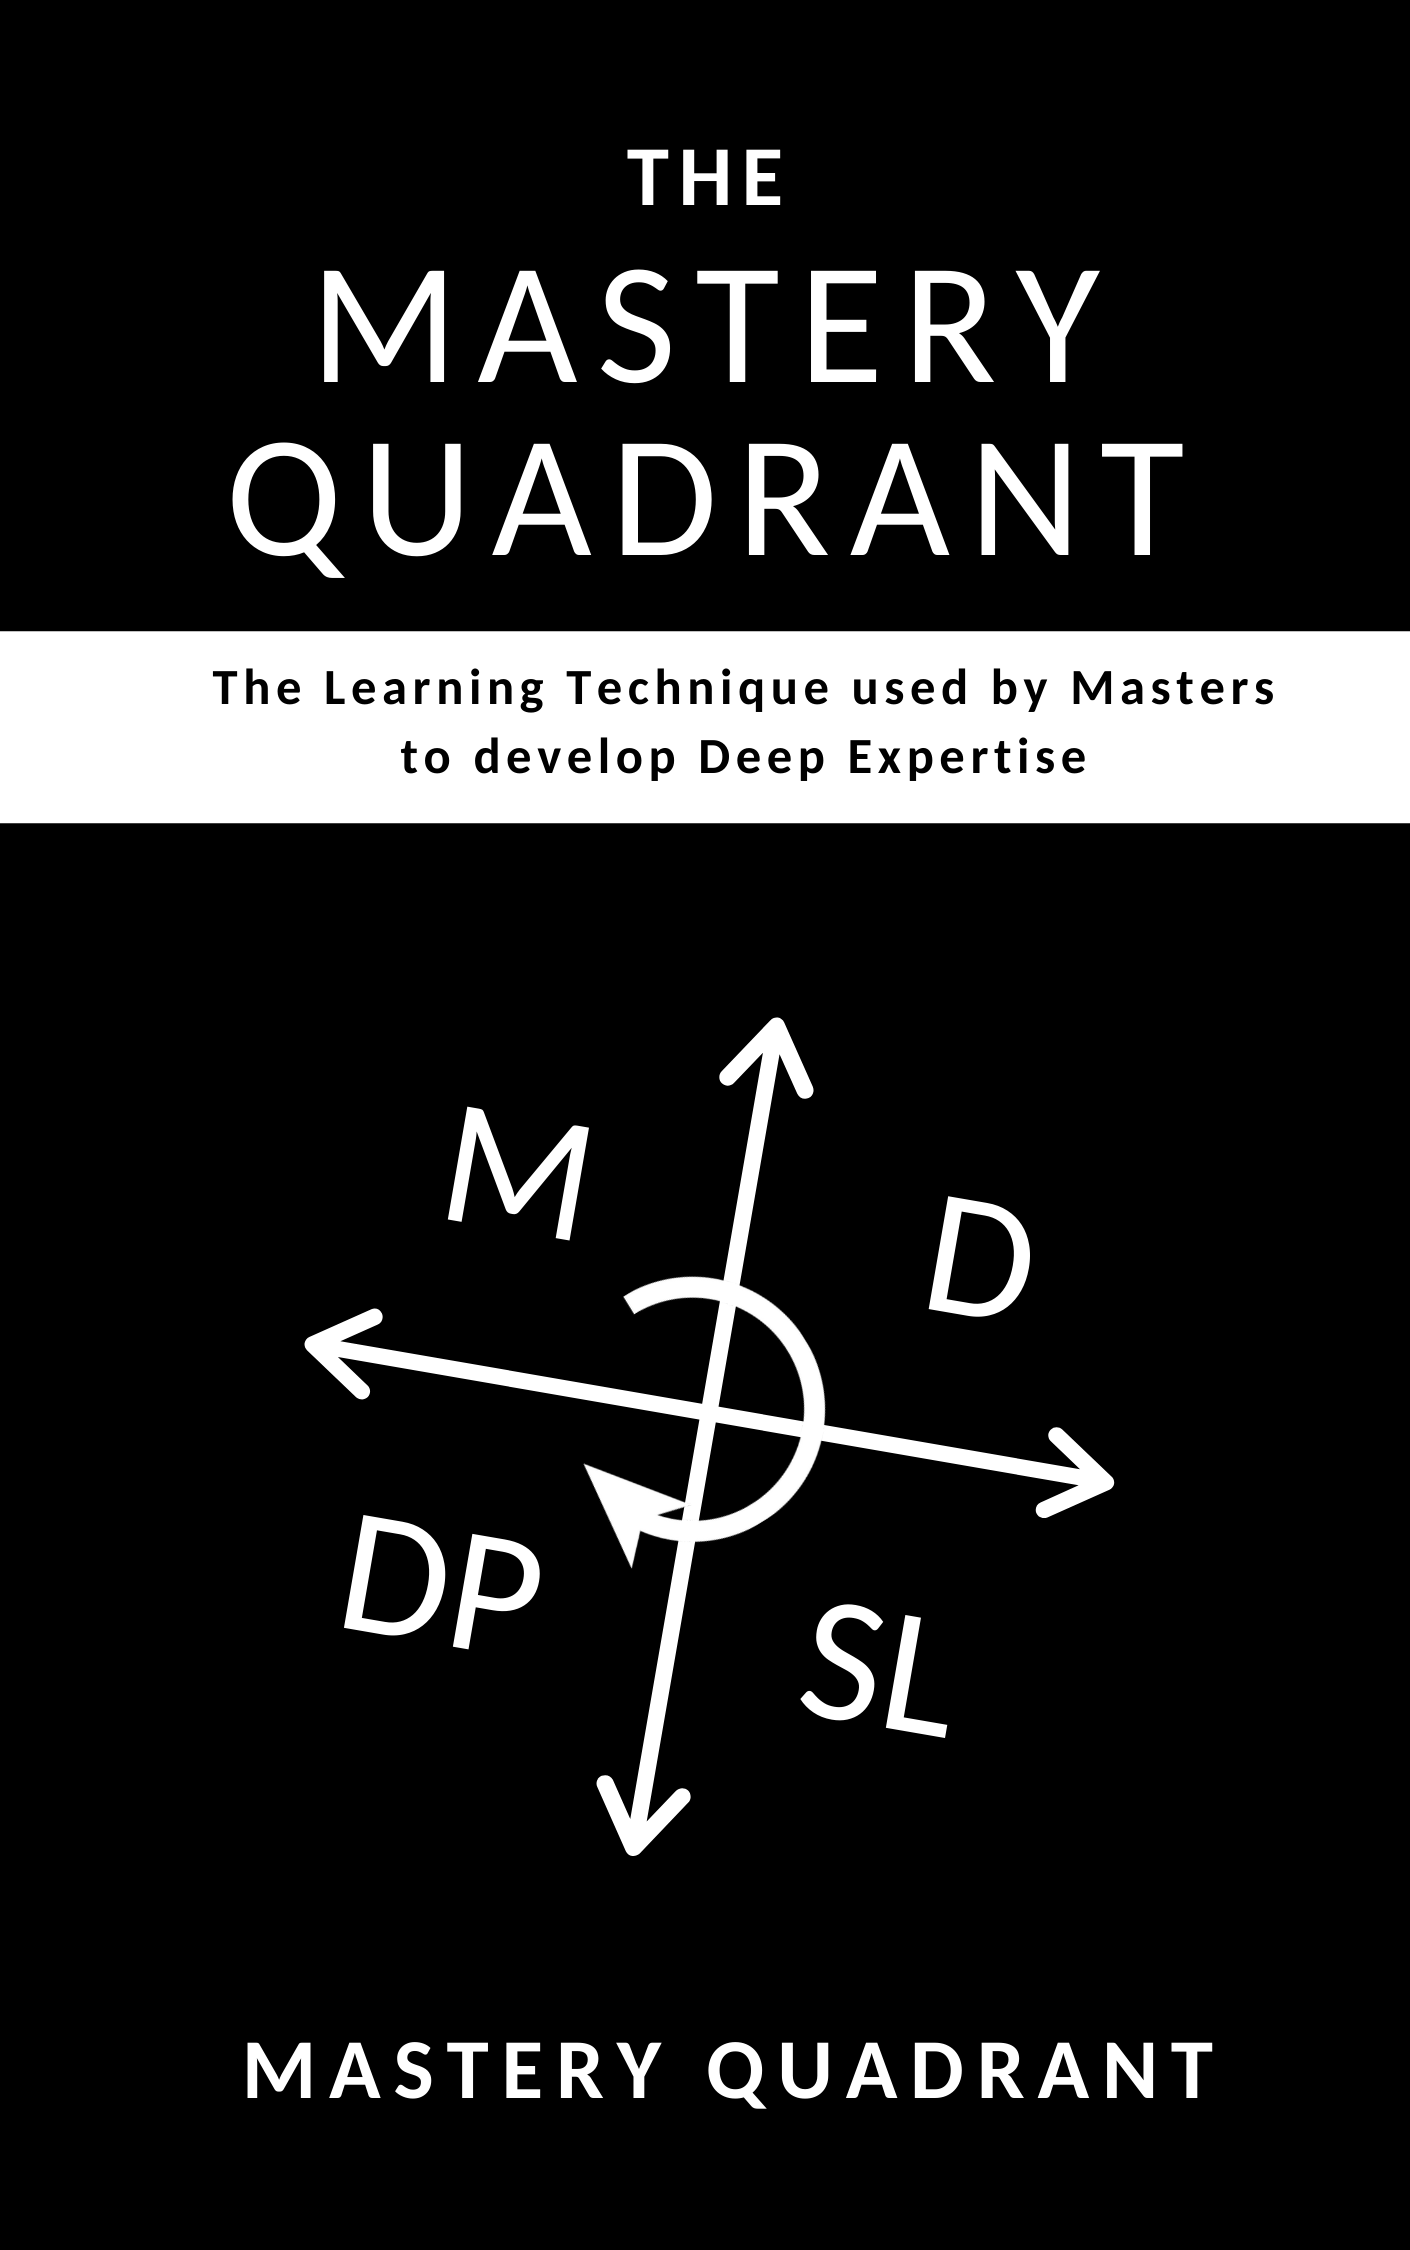 The Mastery Quadrant Book